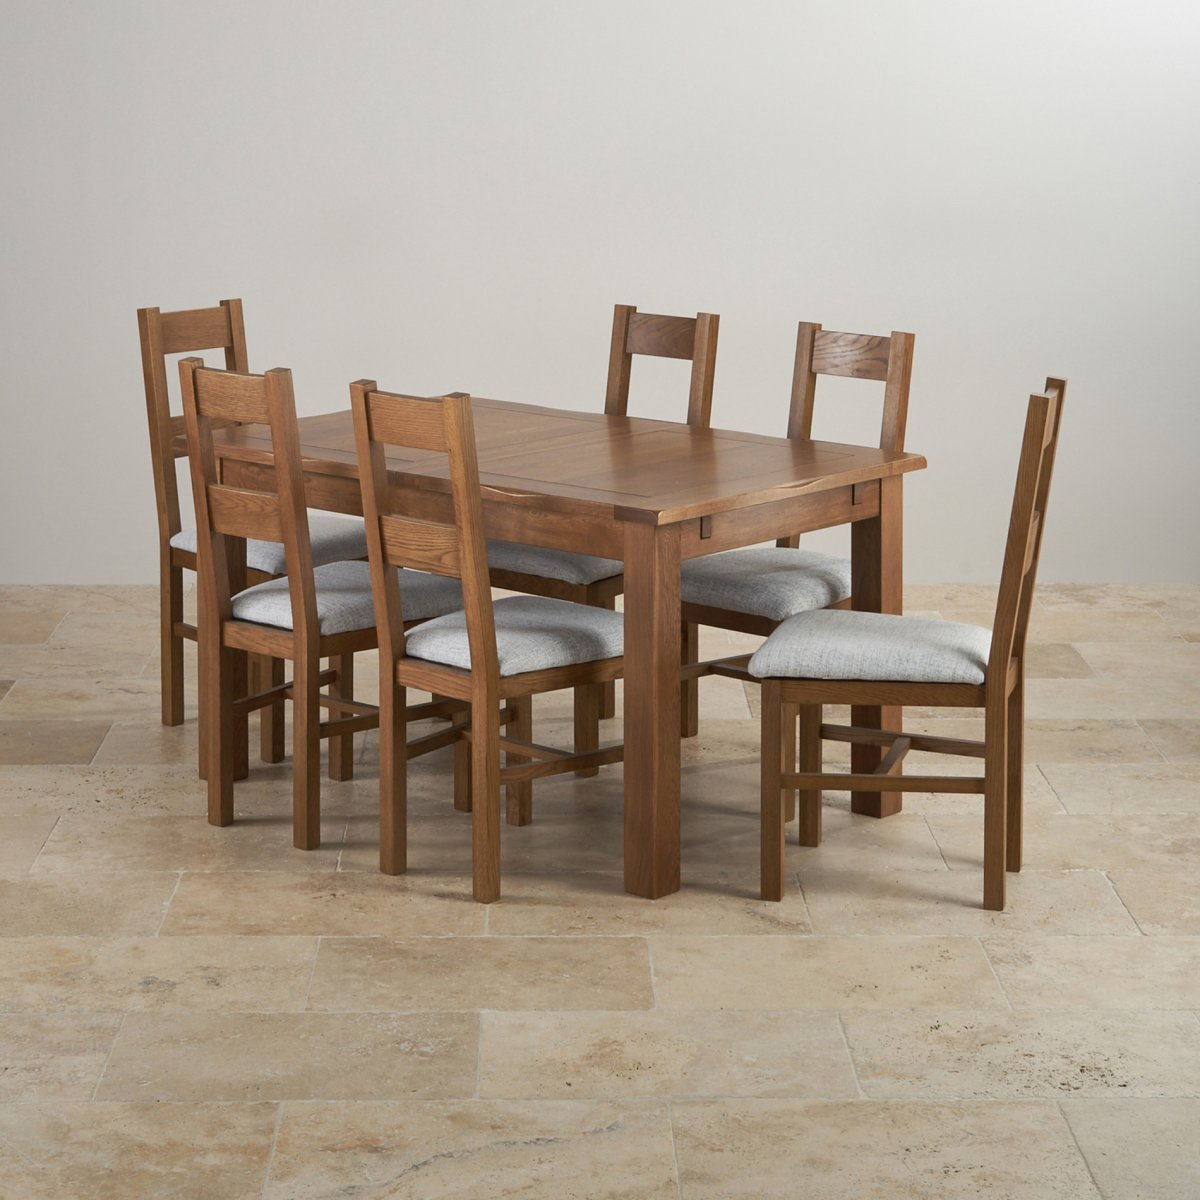 Rushmere Dining Set In Rustic Oak Extending Table 6 Chairs